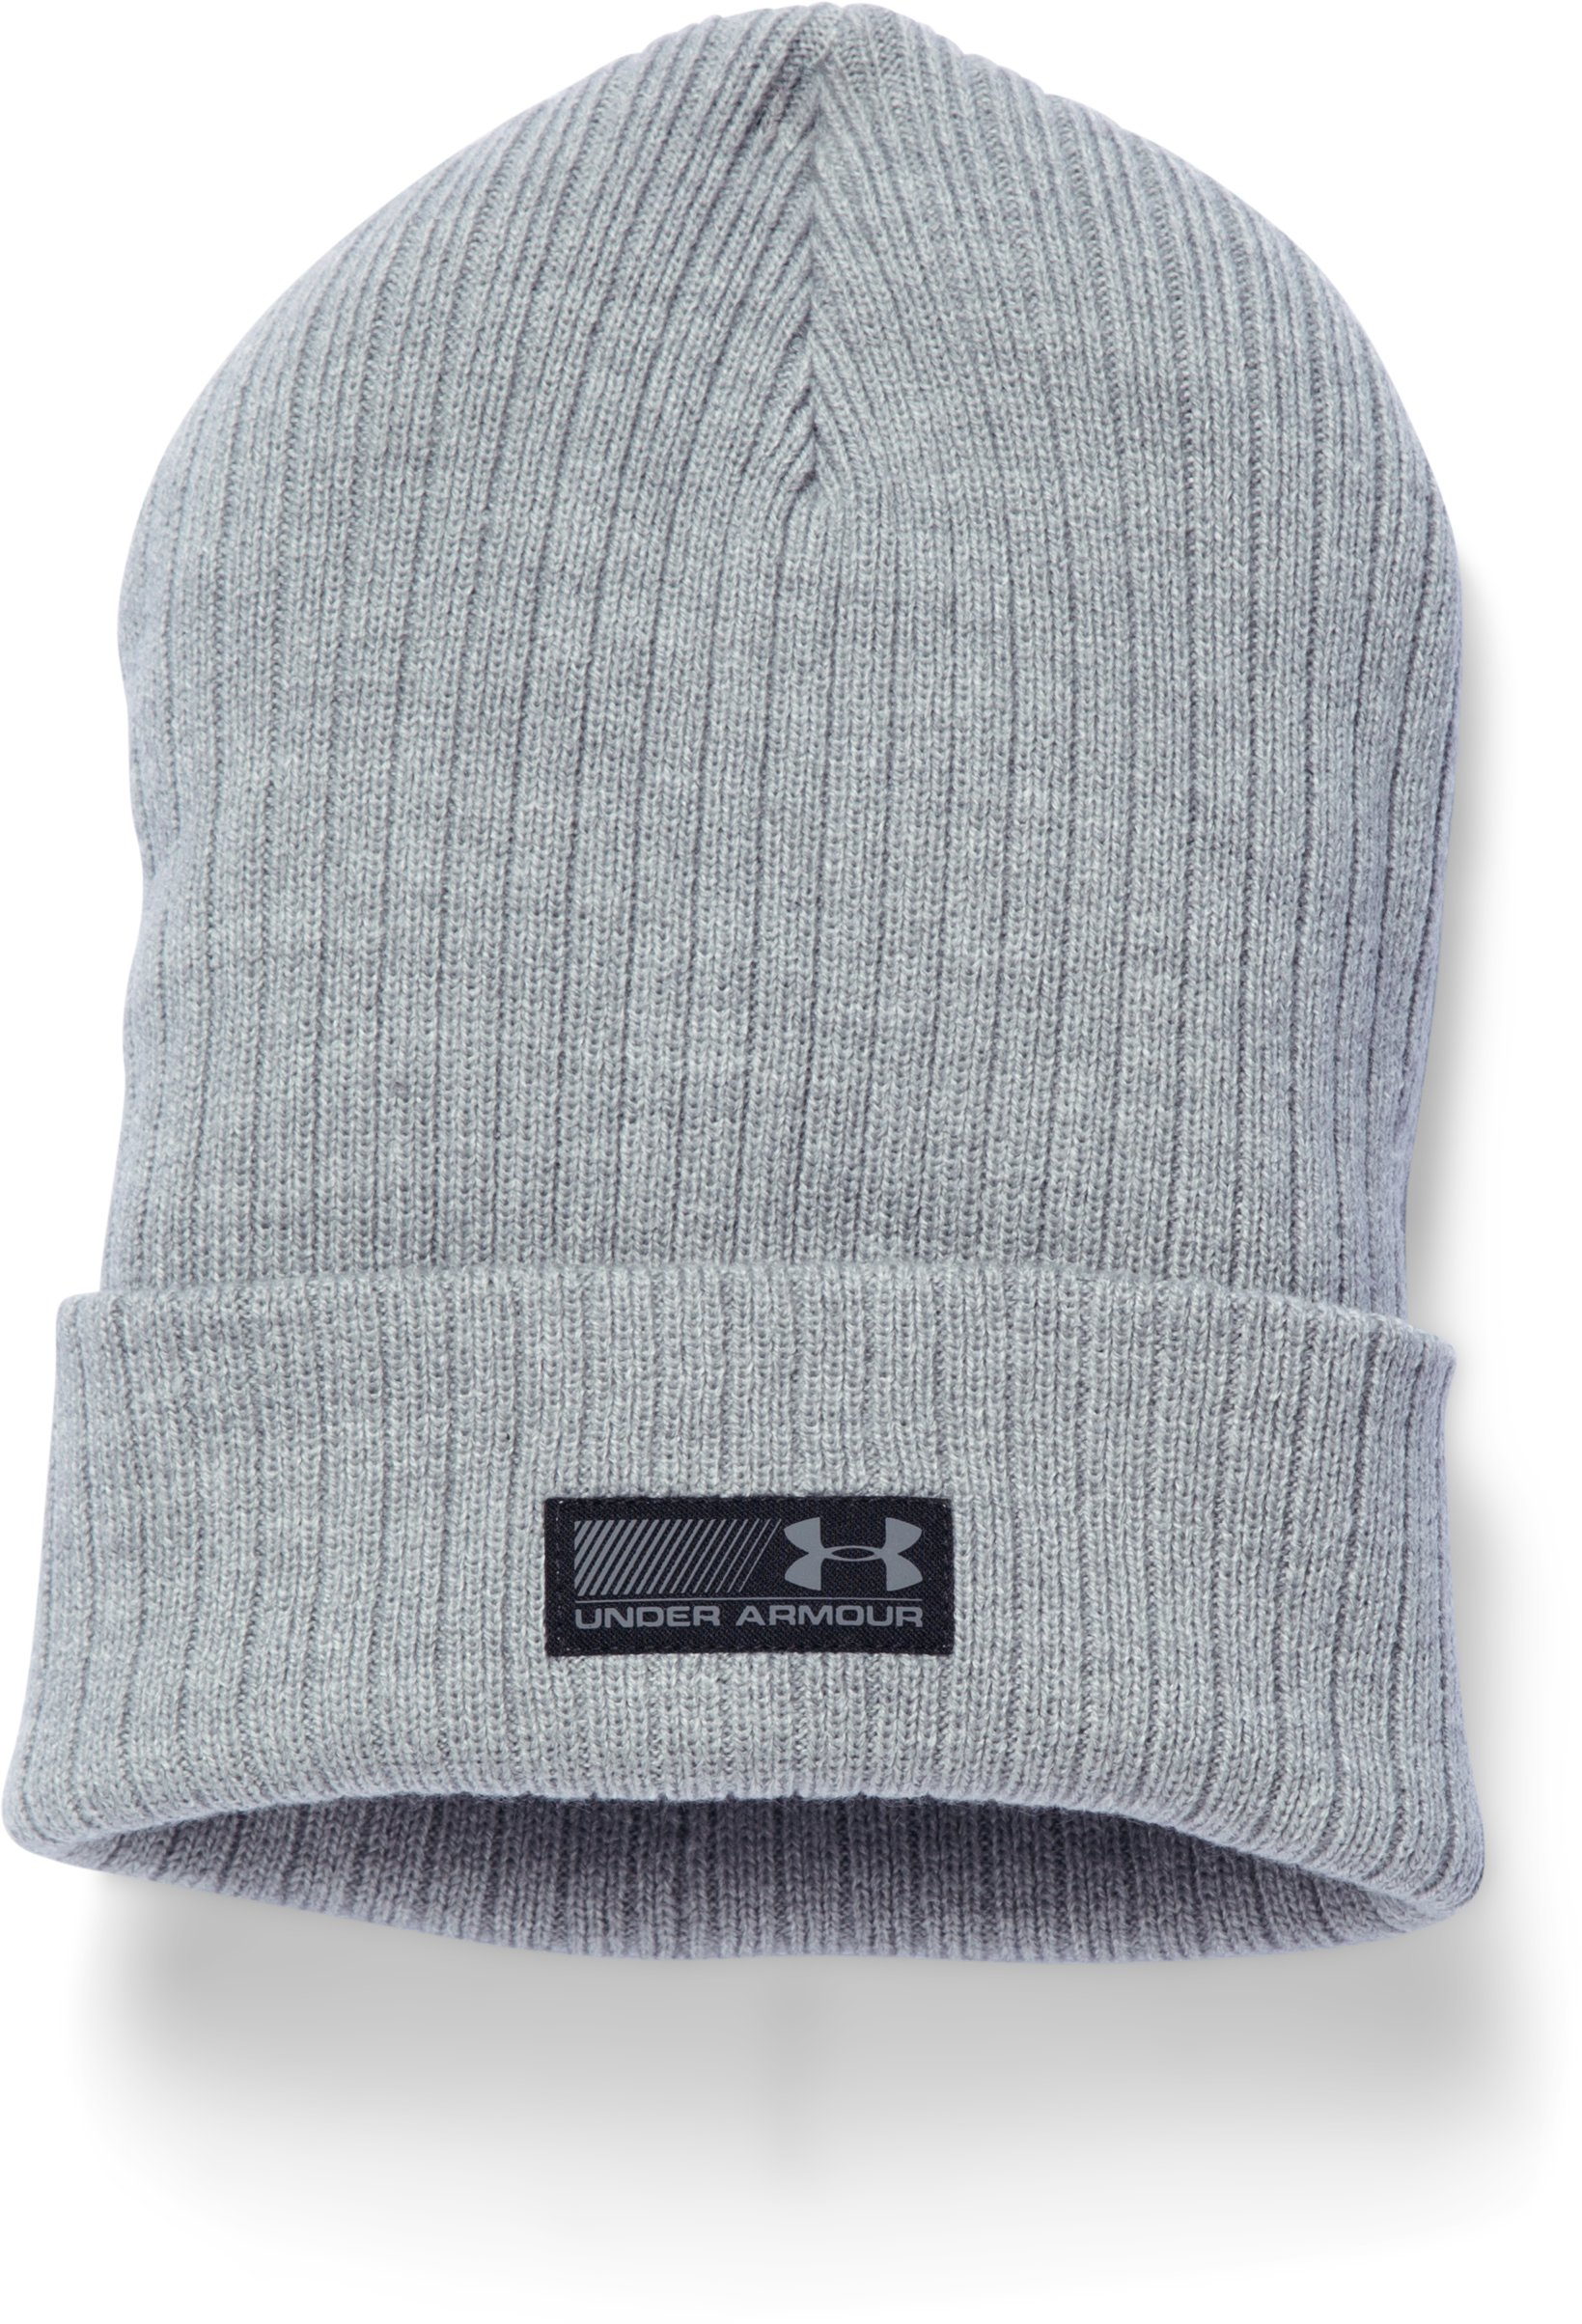 christmas beanies Men's UA Truck Stop Beanie Has good length and covers all ears for those cold winter days....Great tuque!...This hat is very comfortable, it doesn't slip off but is breathable, will never be cold while wearing it, and it has a nice look.